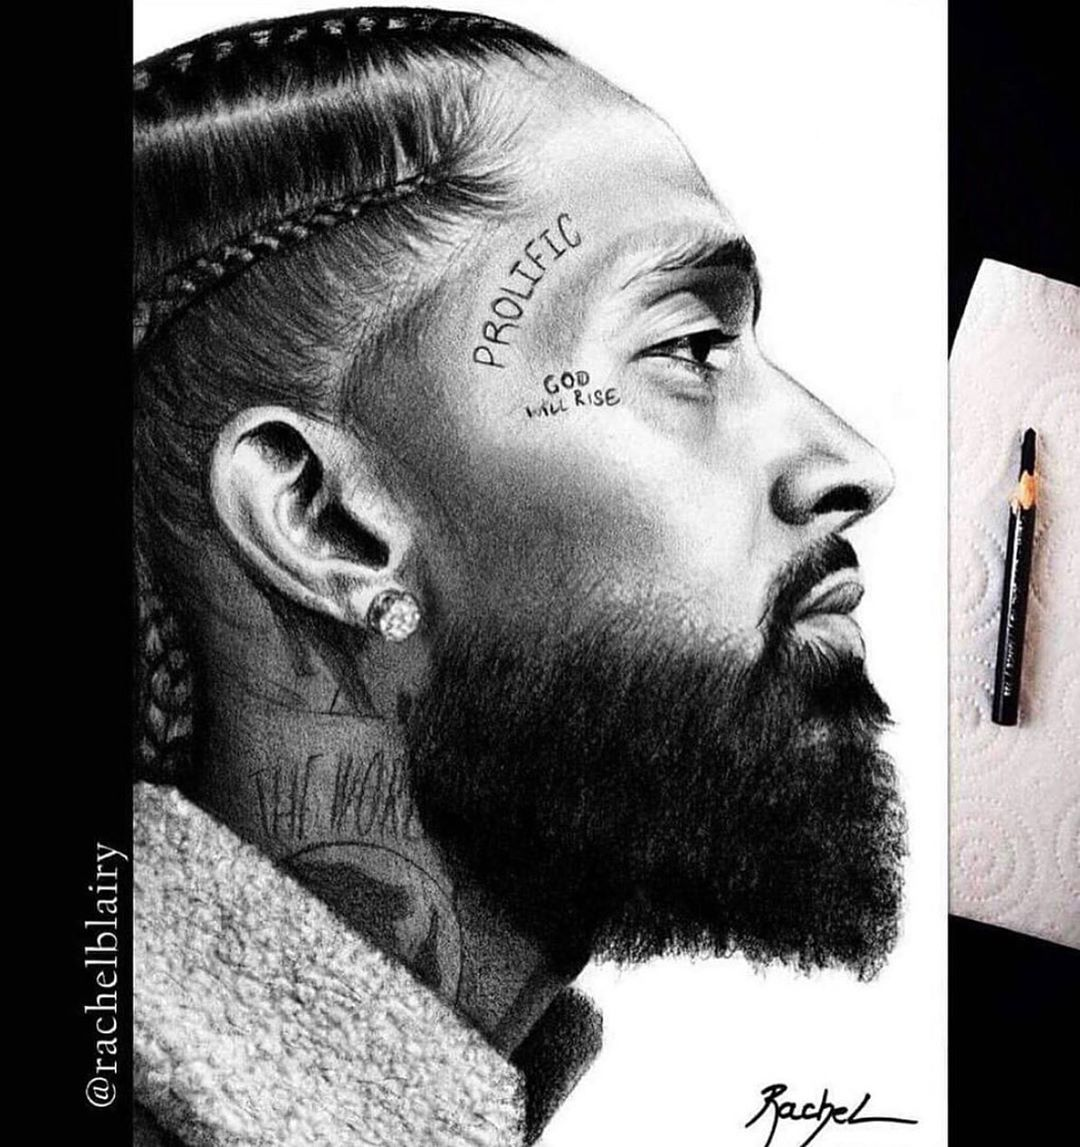 Nipsey Hussle Rip On Instagram Wow Rachelblairy Has Blown Me Away With This Drawing I Keep Getting Emotional When I See The Instagram Drawings Artistry